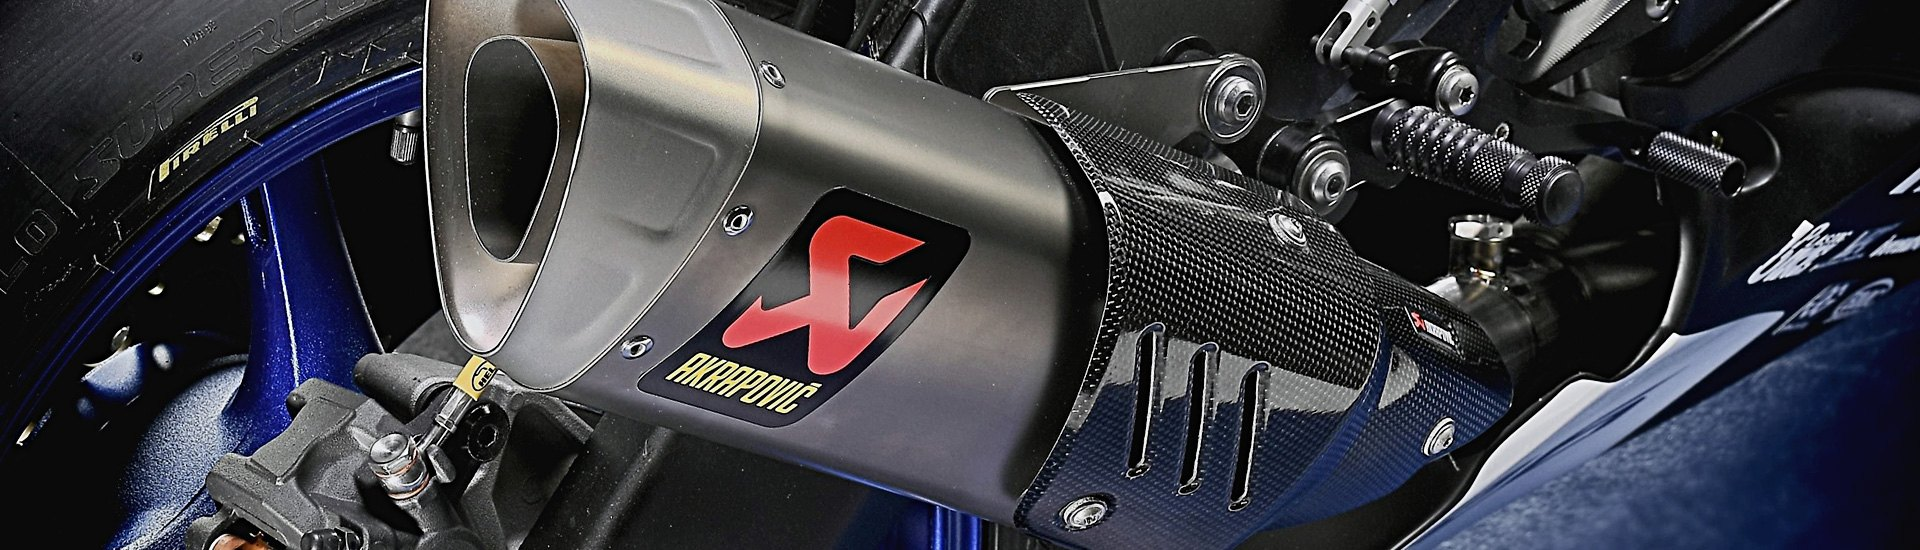 Motorcycle Exhaust Parts | Mufflers, Slip-Ons, Pipes, Tips